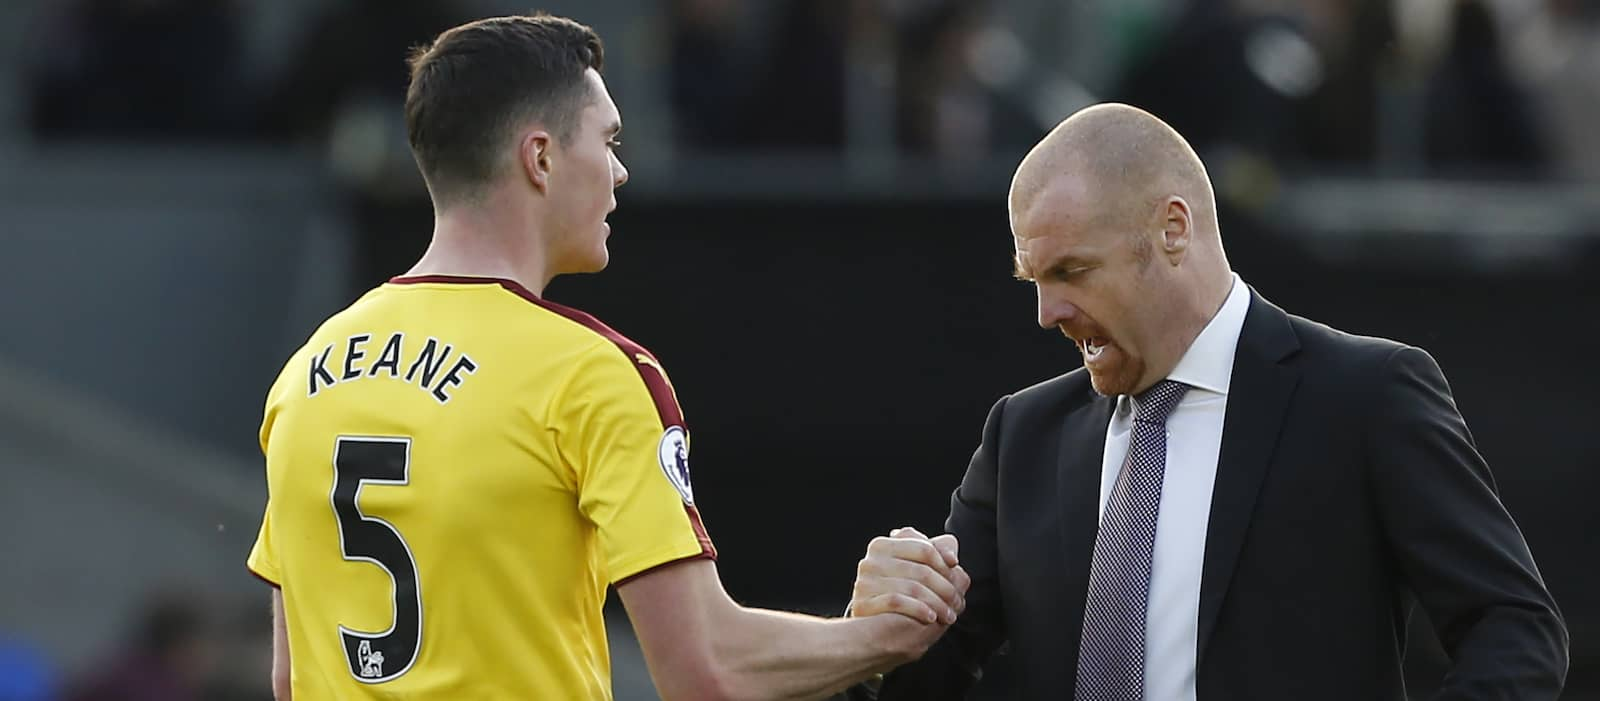 Michael Keane set to re-join Man United in £25m move | Transfer News